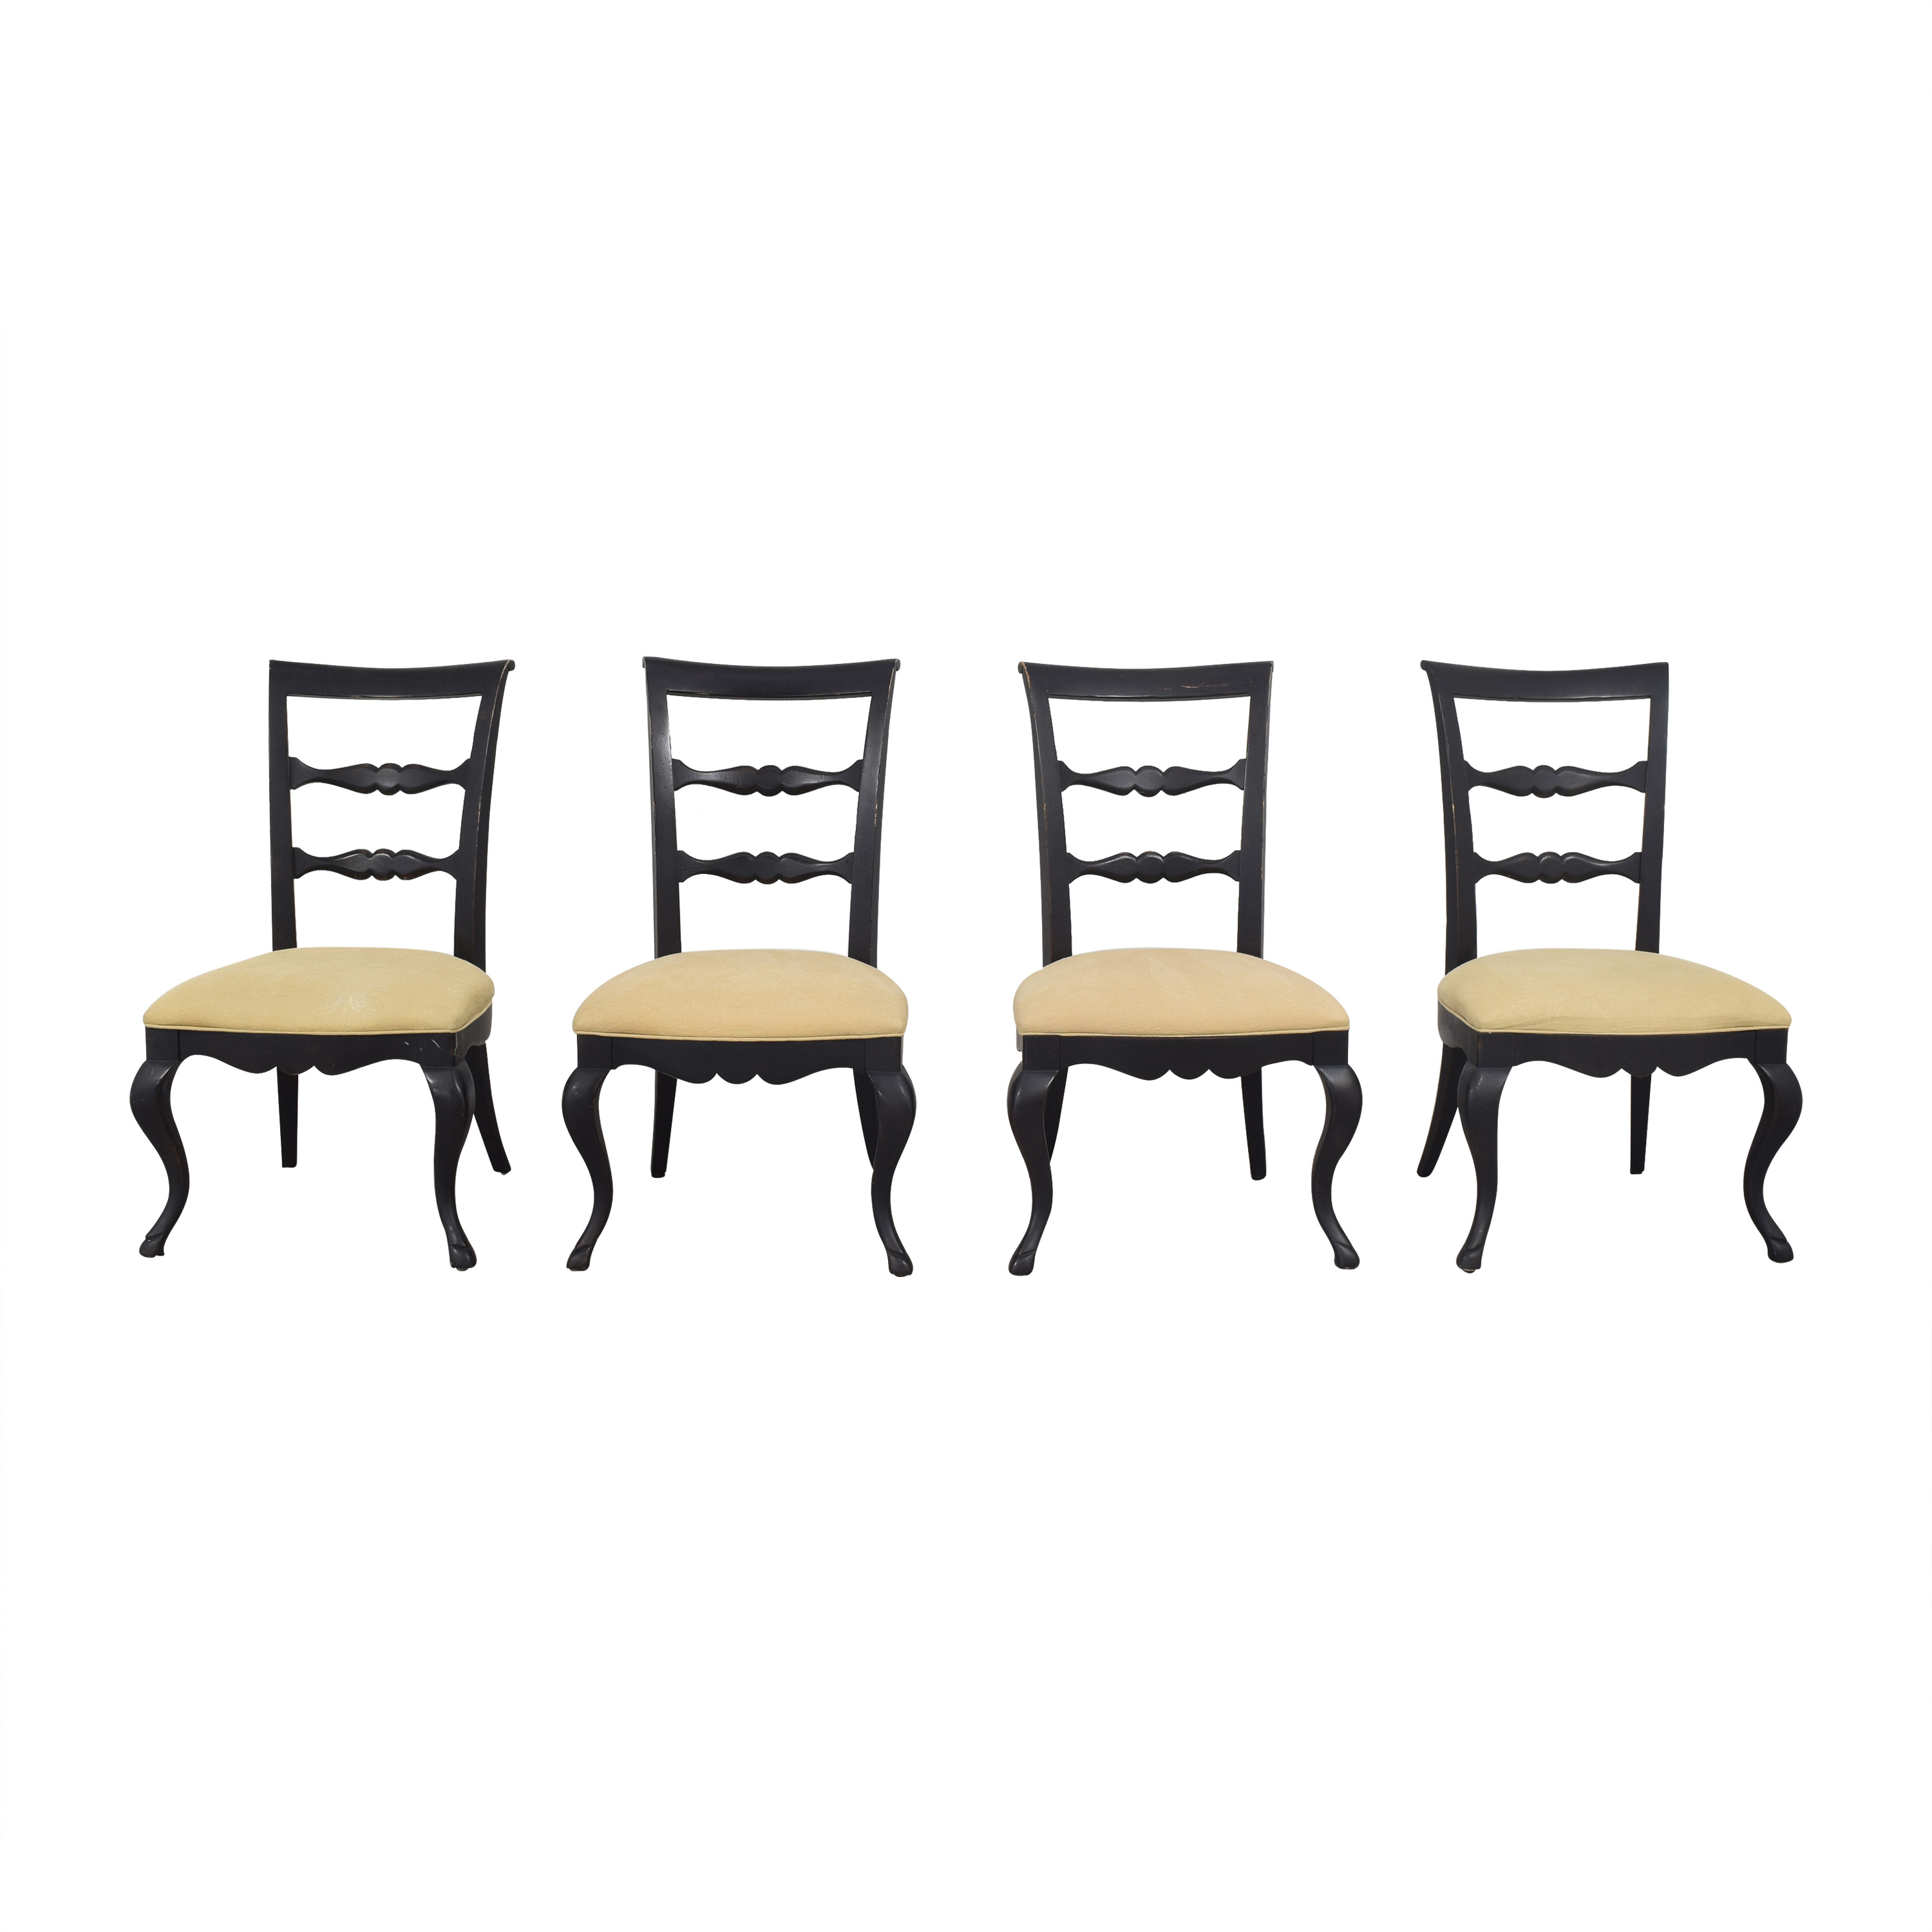 Thomasville Thomasville Vintage Chateau Dining Side Chairs price